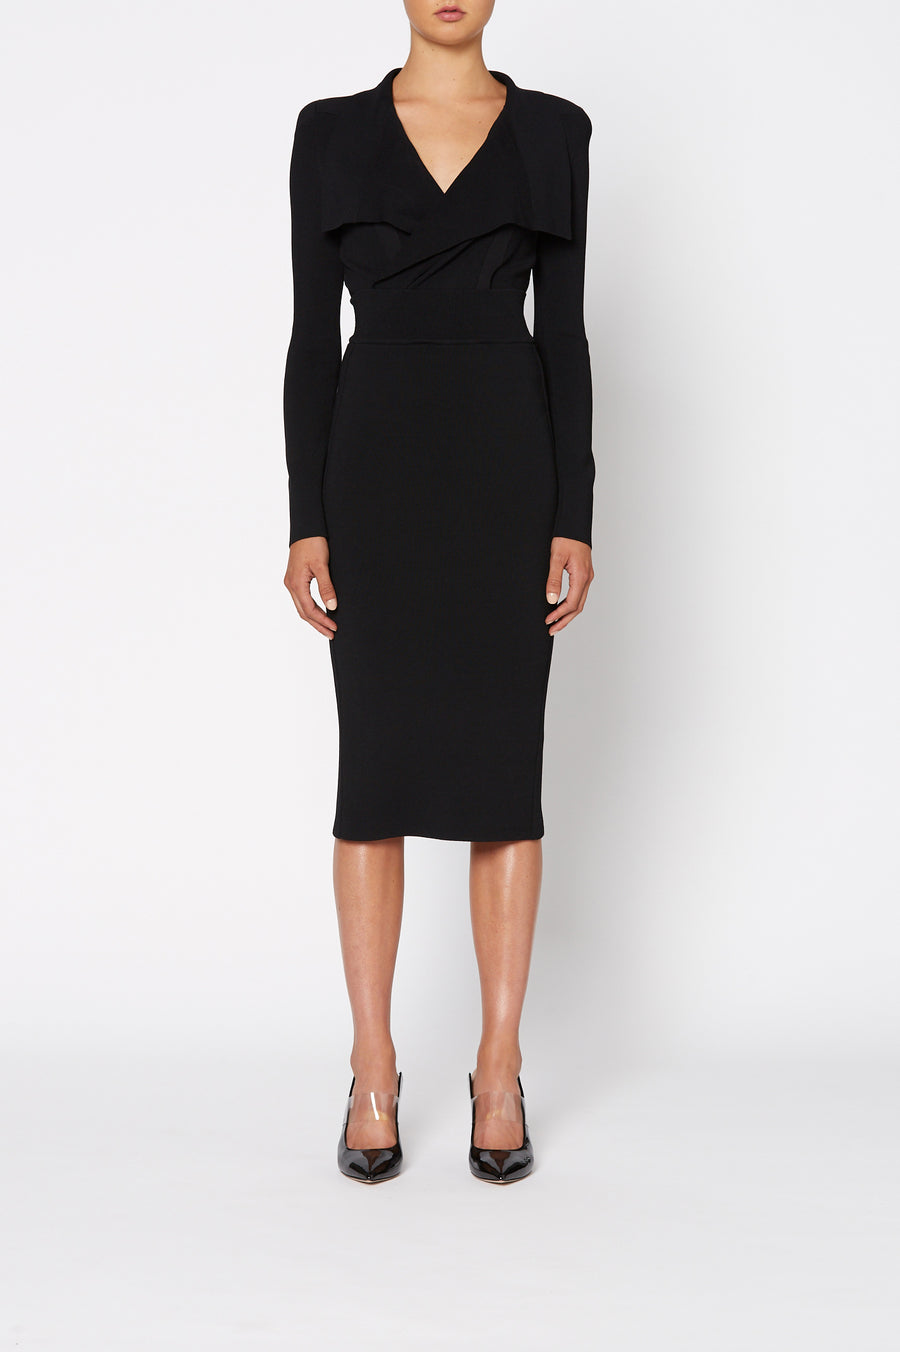 Crepe Knit Drape Front Dress, pointed collar, fitted bodice, shoulder pads, long sleeves, falls below the knee, color black